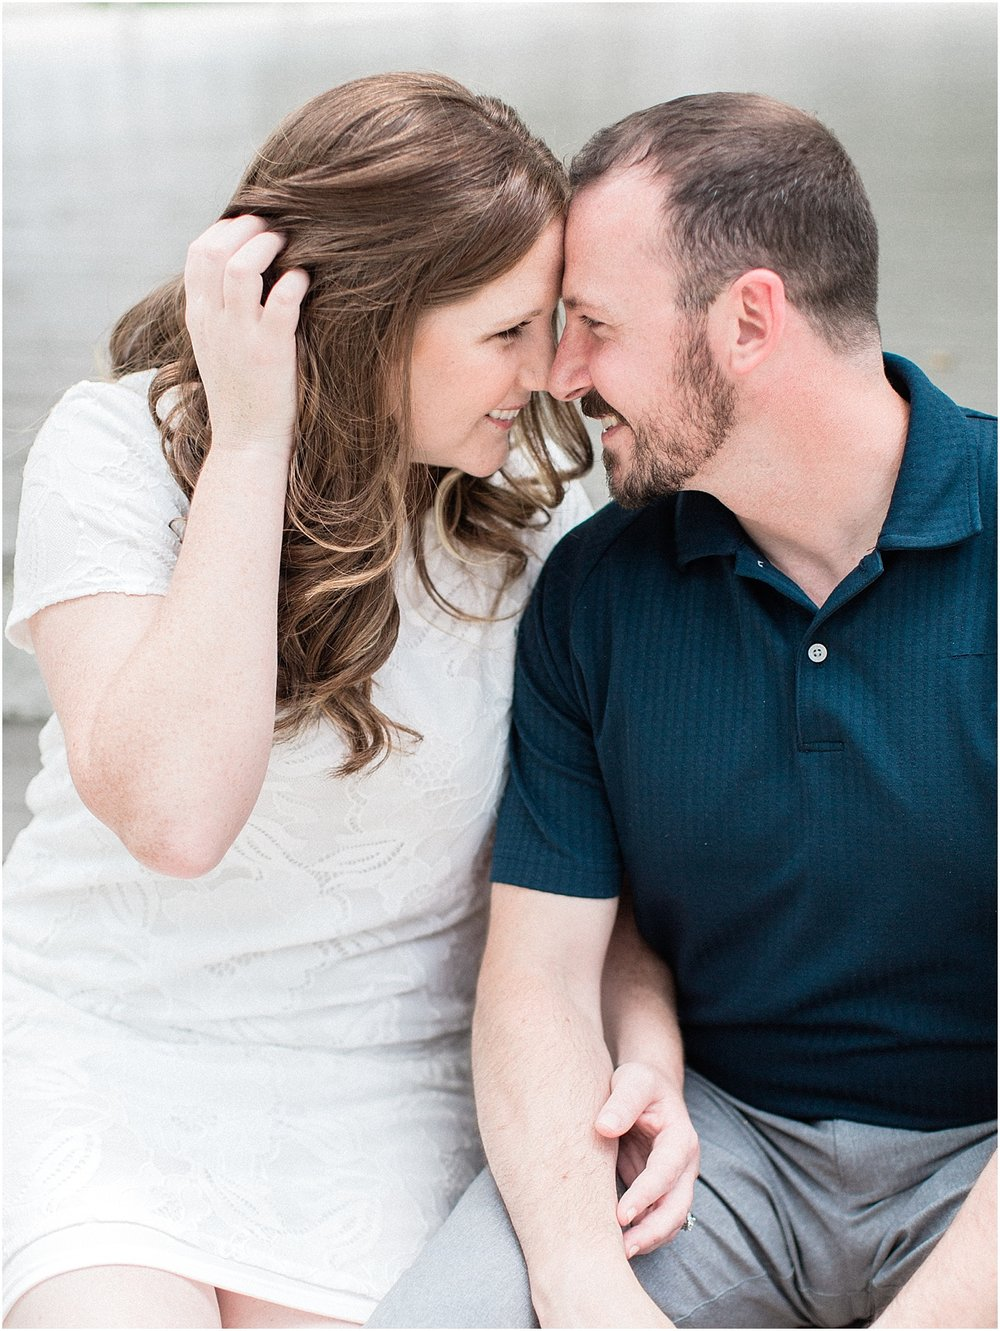 jaclyn_adam_engagement_session_norwood_south_shore_cape_cod_boston_wedding_photographer_meredith_jane_photography_photo_0317.jpg